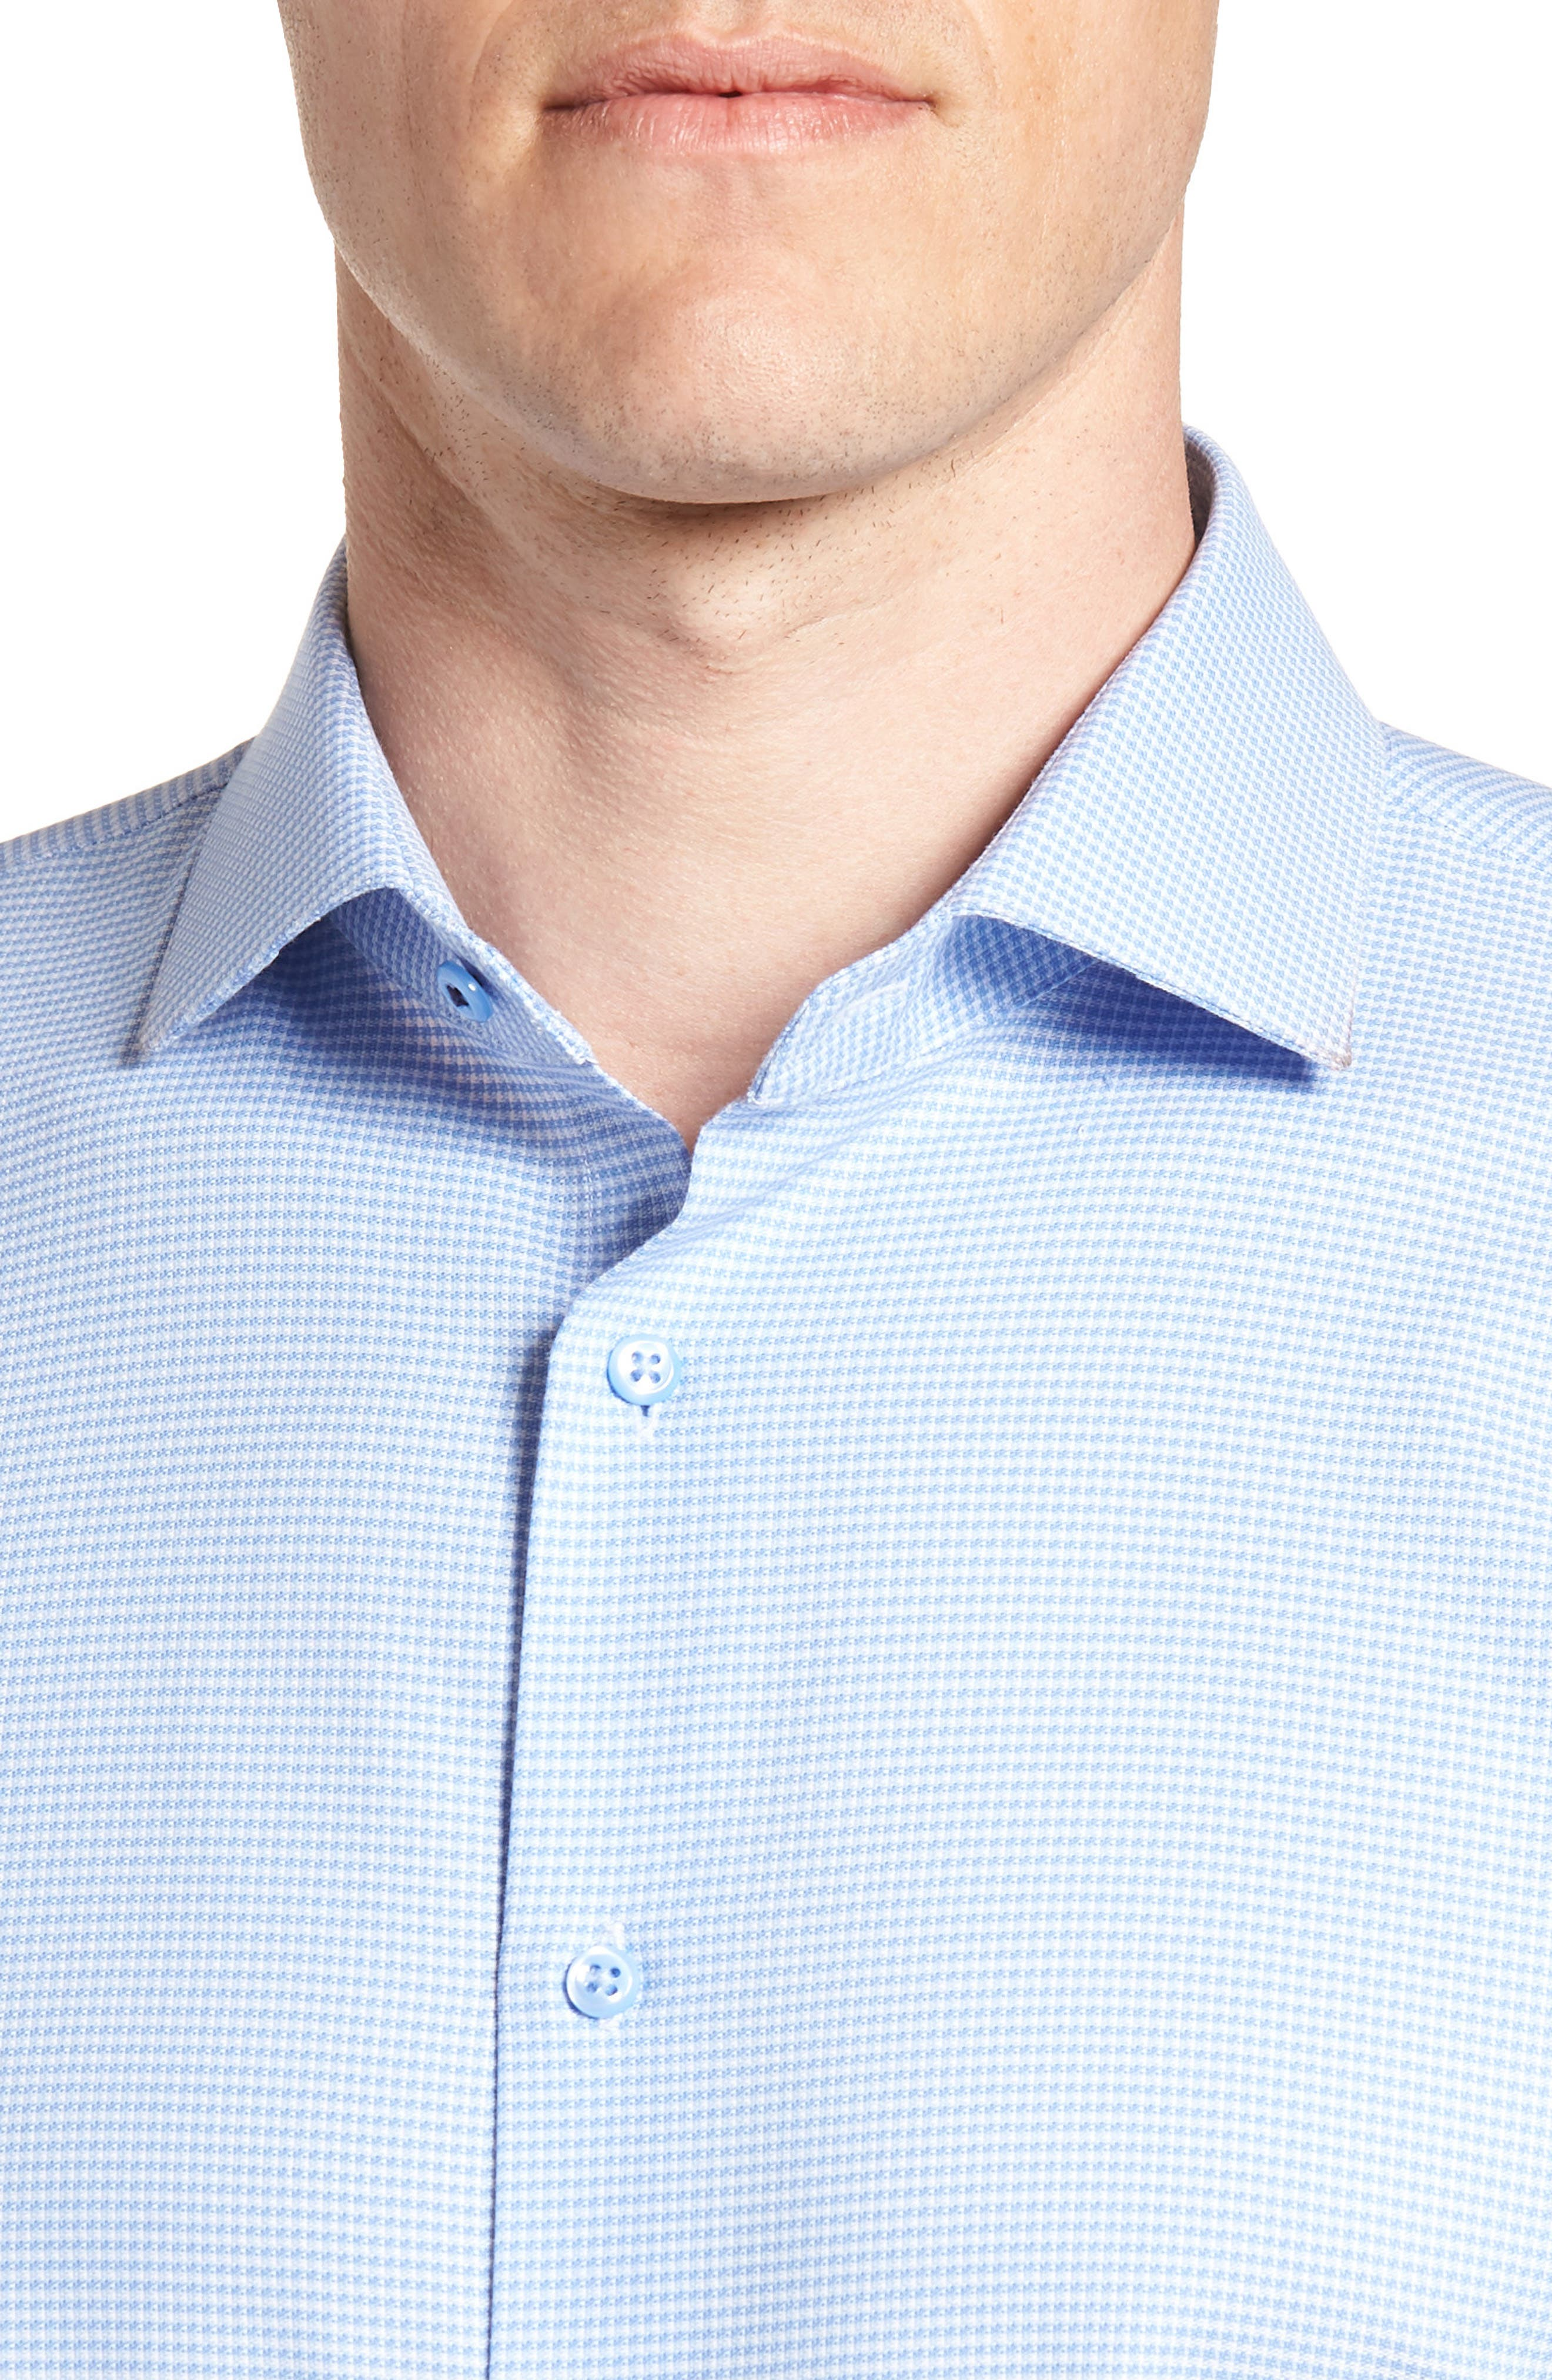 Tech-Smart Trim Fit Stretch Texture Dress Shirt,                             Alternate thumbnail 2, color,                             Blue Hydrangea